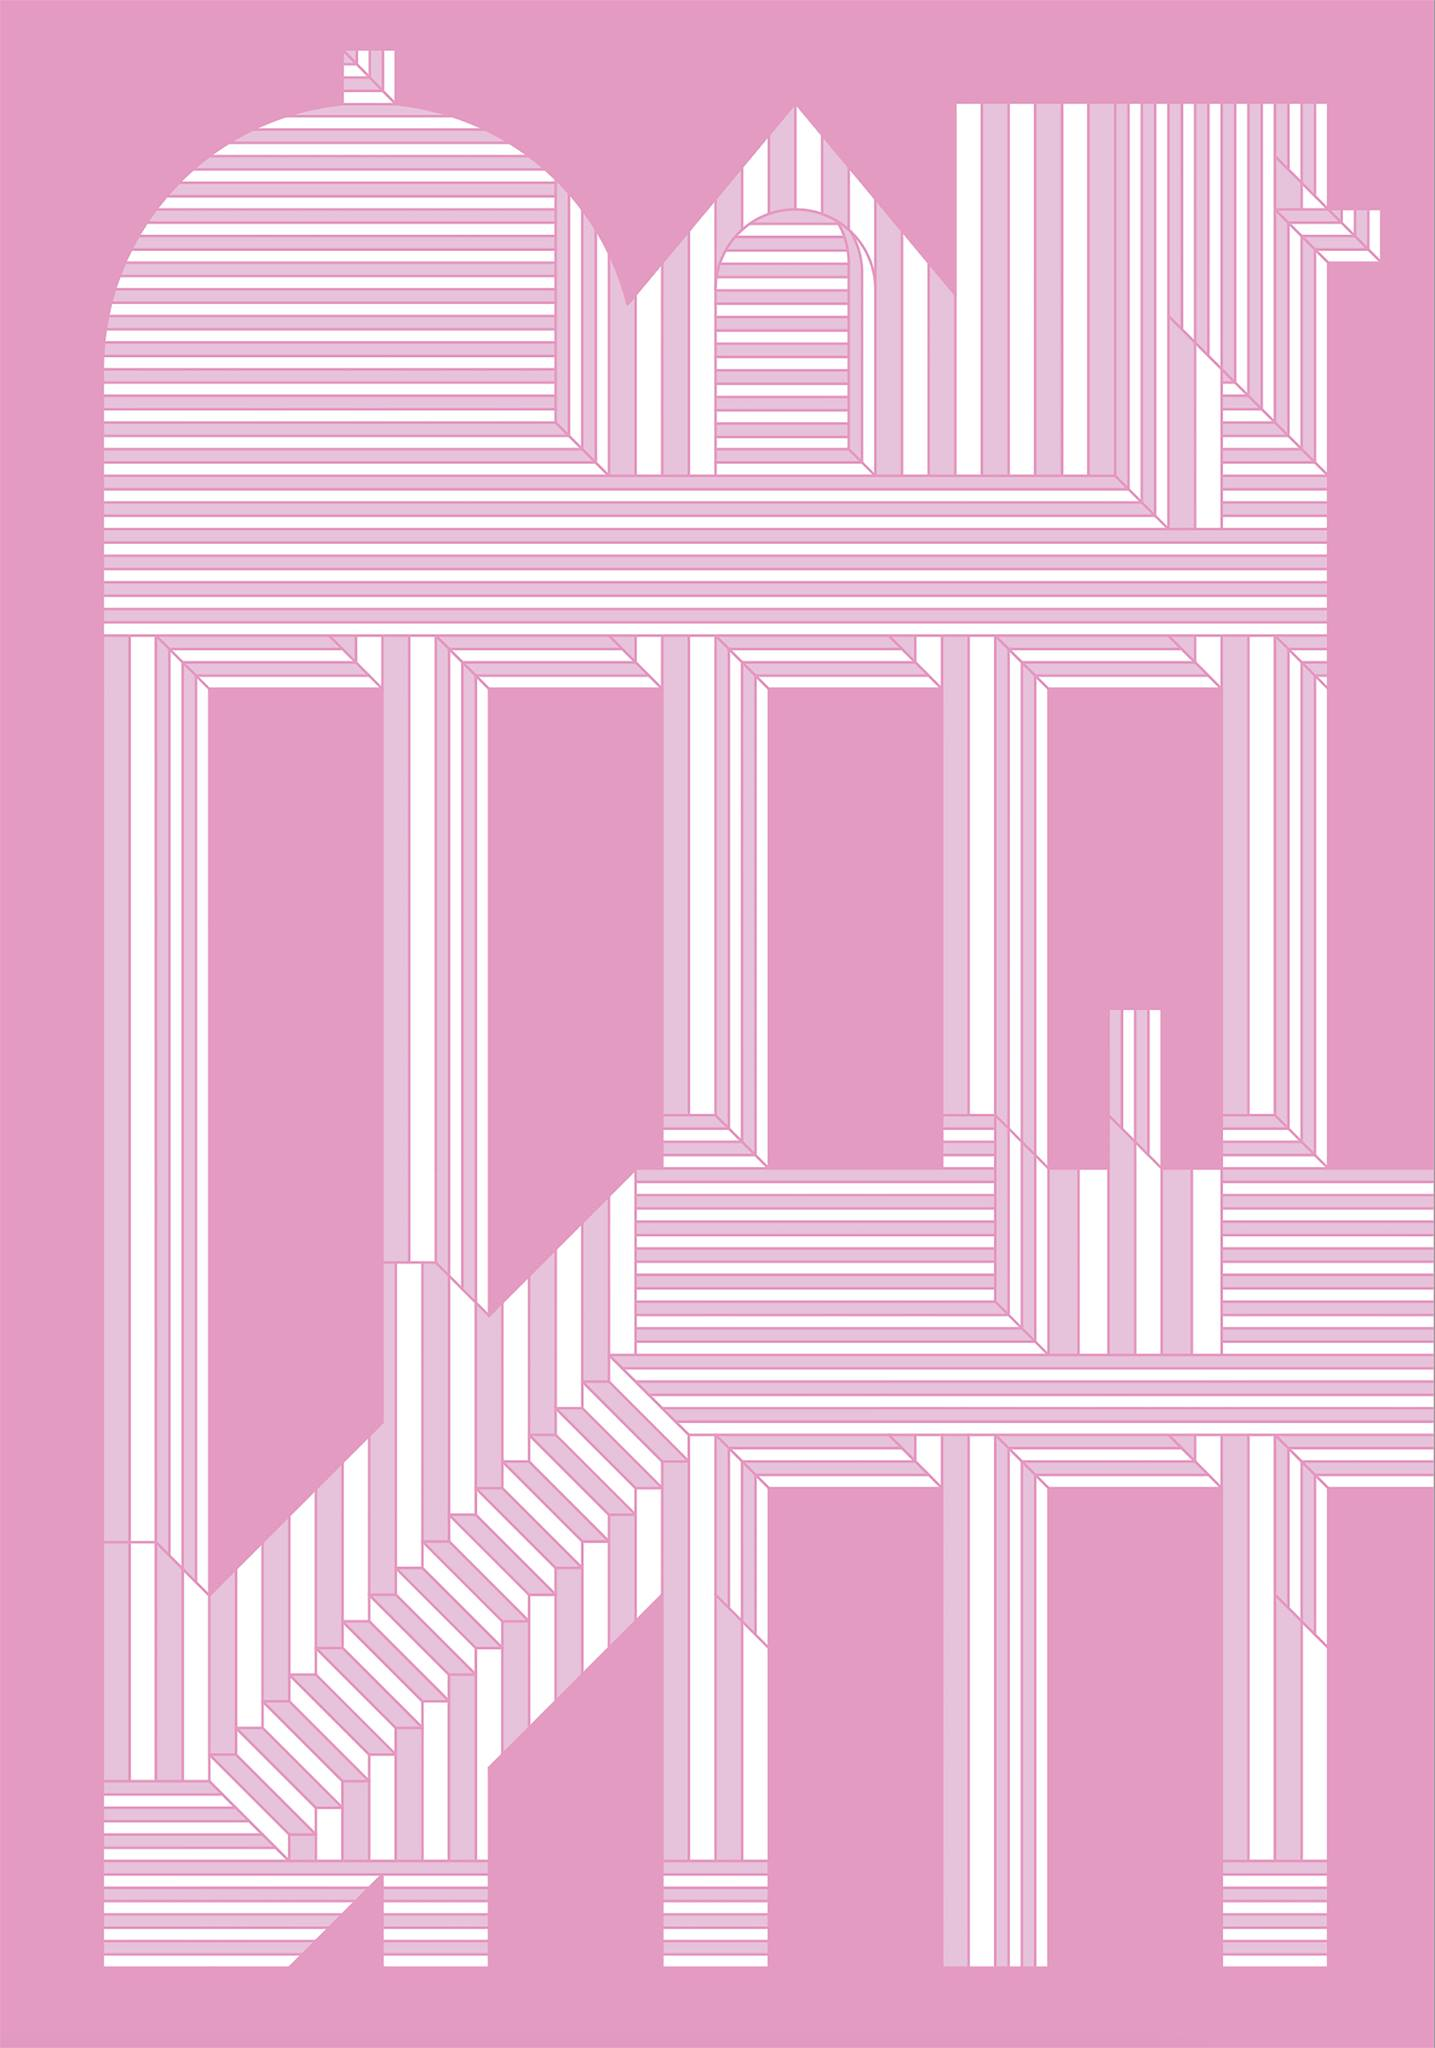 Digitized looking image, all in shades of pink, lines that resemble a two level building structure.